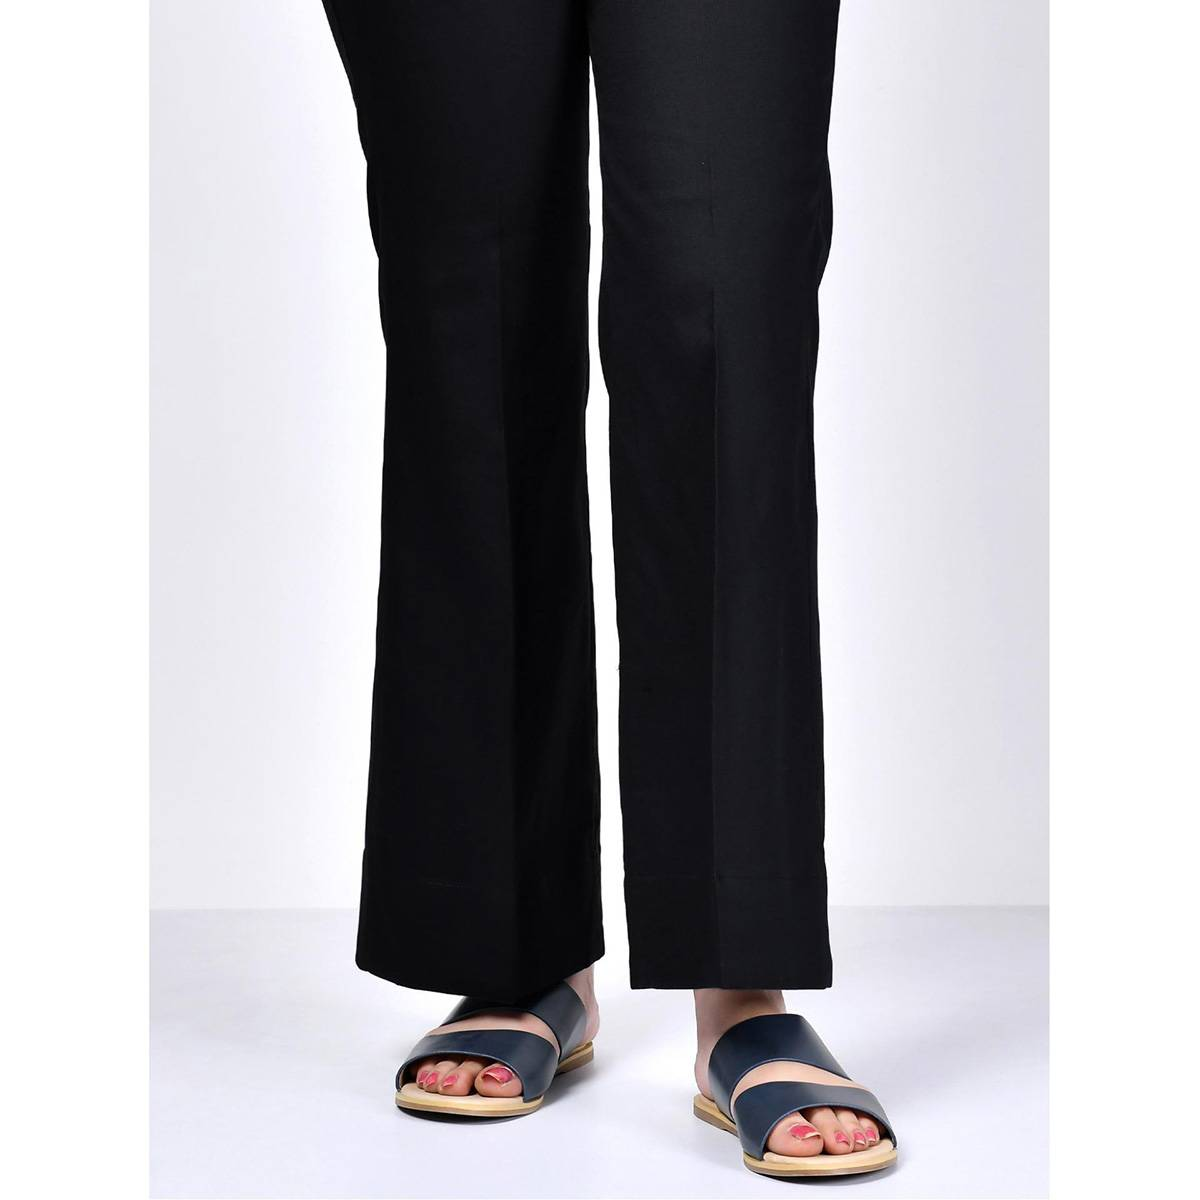 LimeLight Black Stitched Bootcut Pants For Women P3204-MDW-BLK